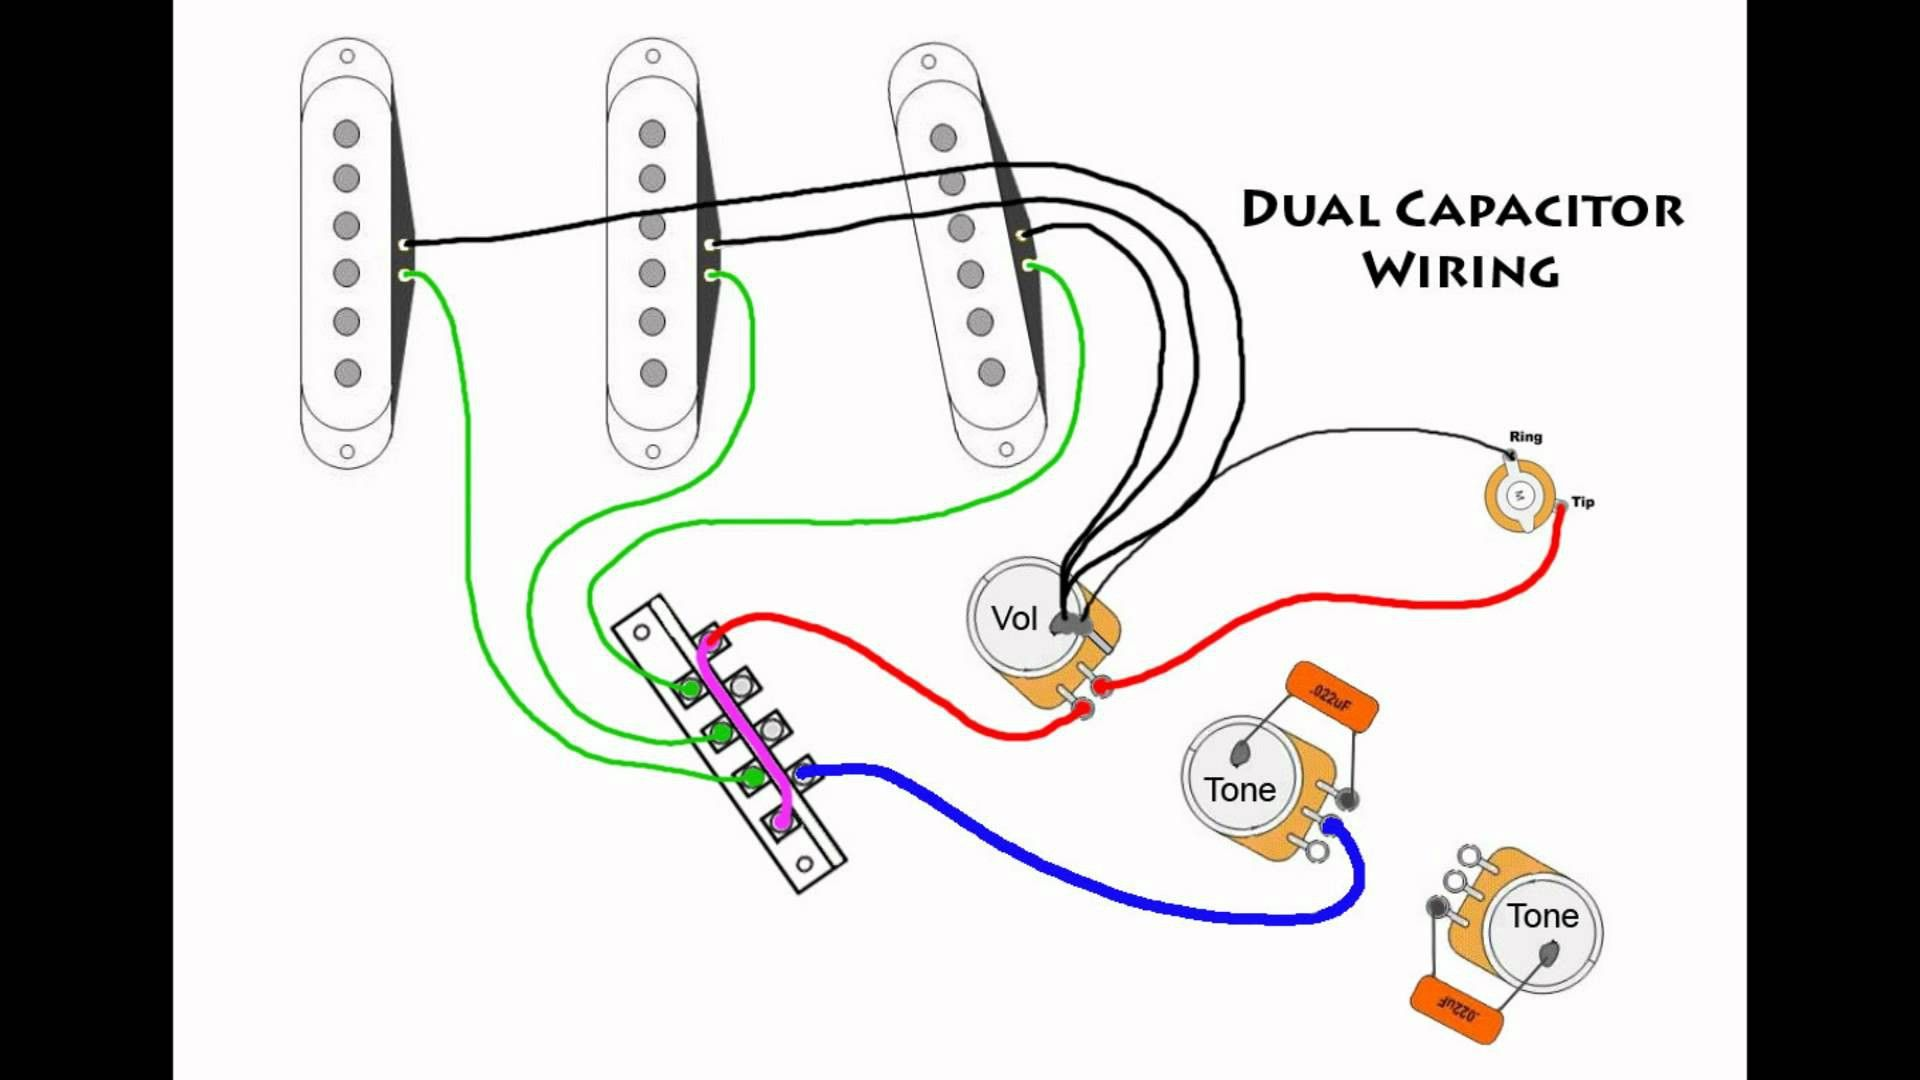 small resolution of fender stratocaster wiring diagram best of strat throughout diagramsfender stratocaster wiring diagram best of strat throughout